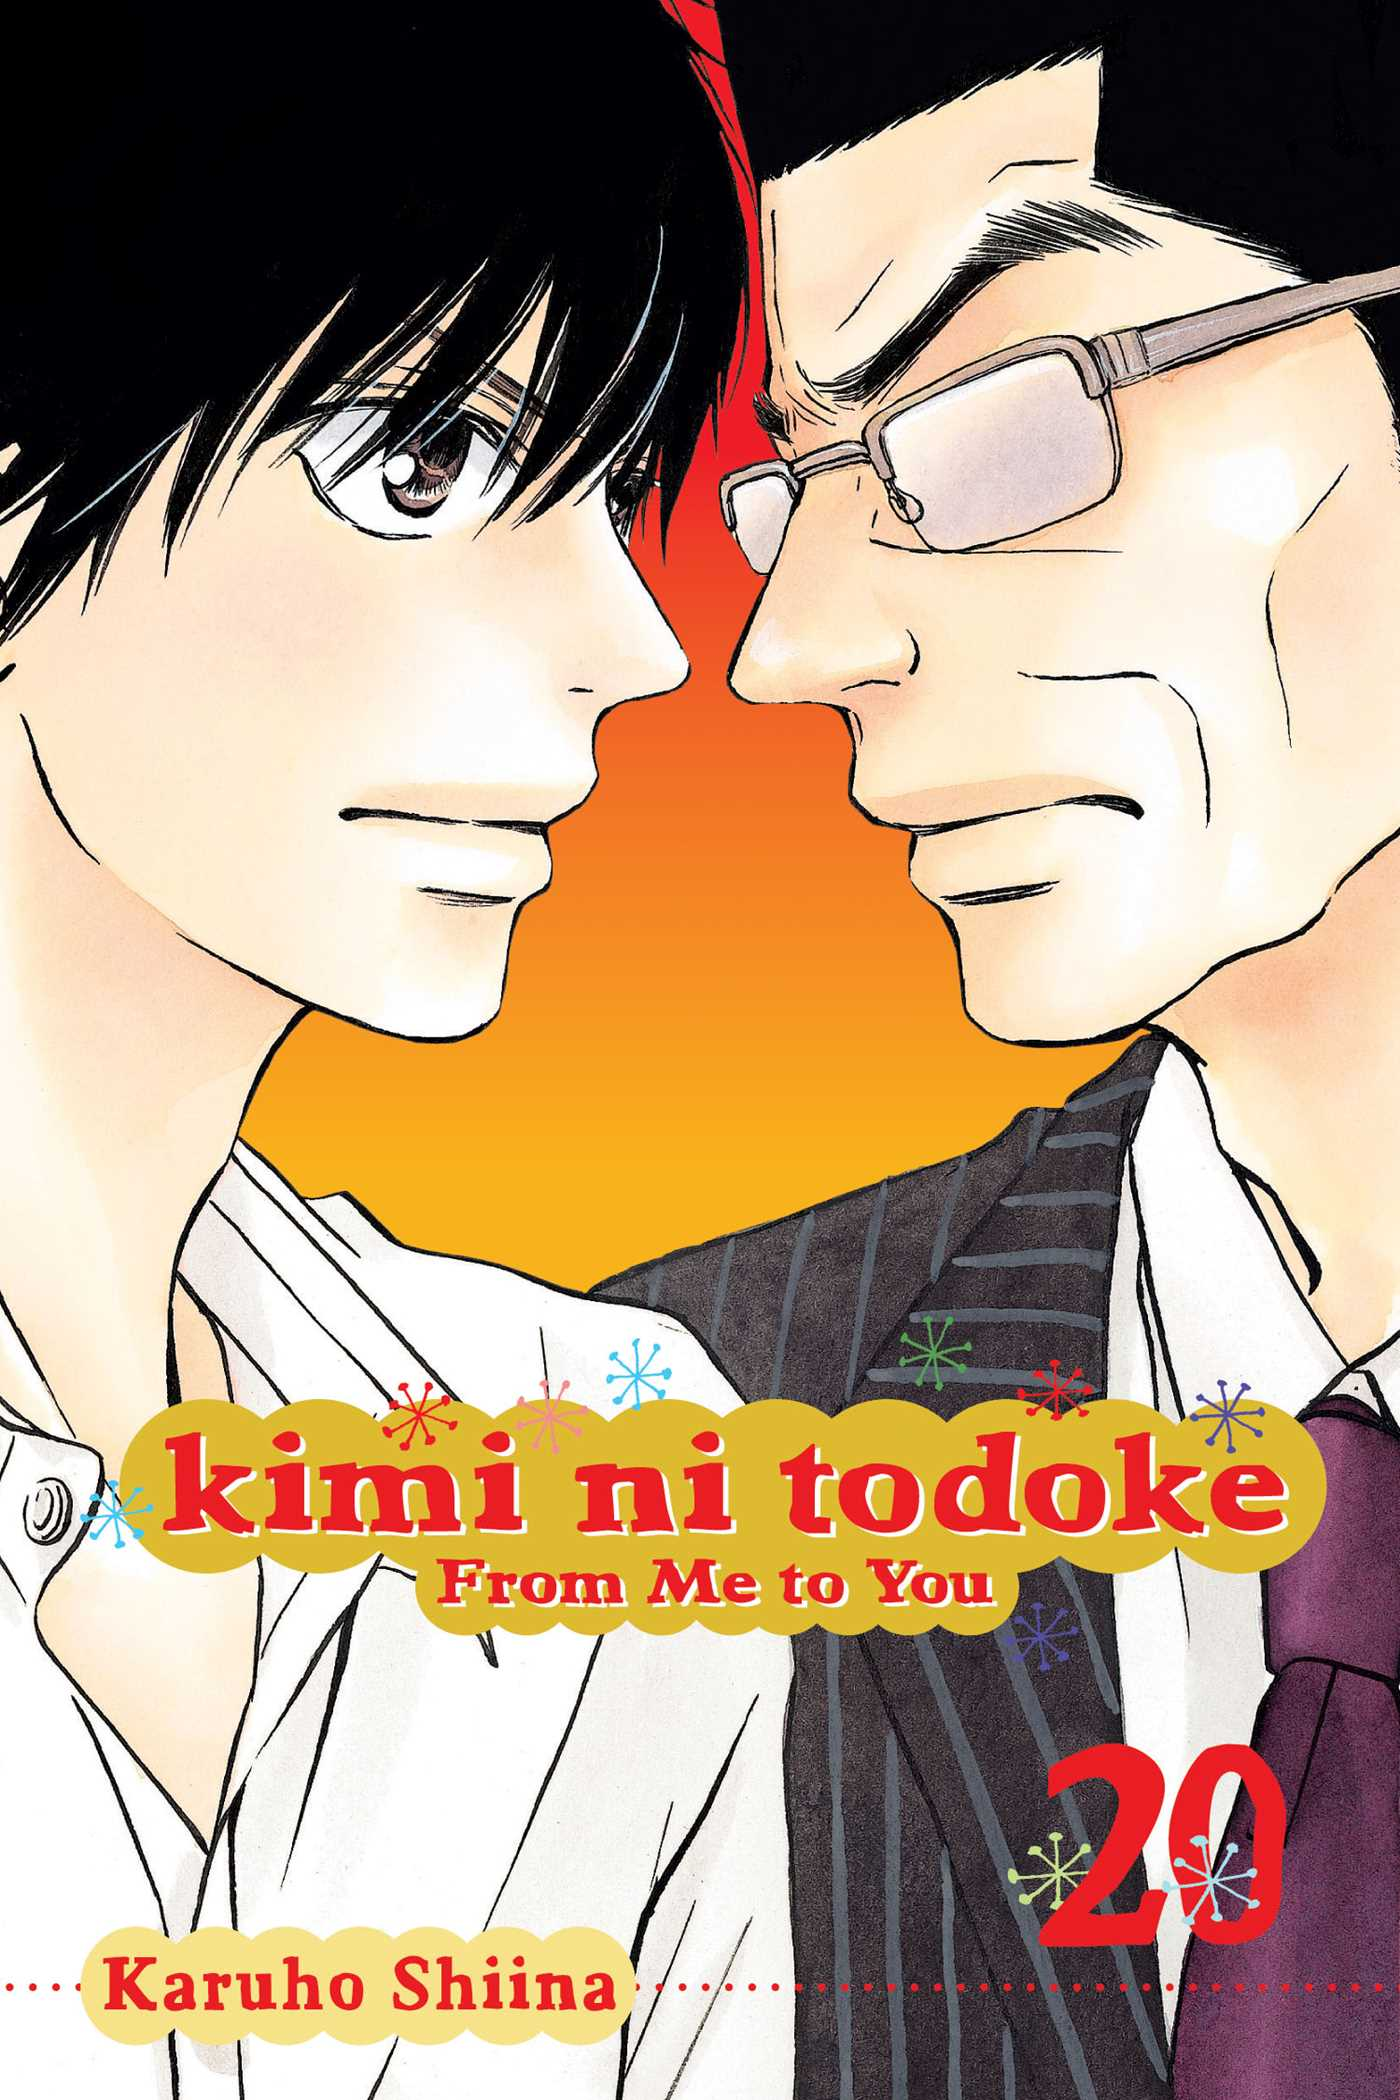 Kimi-ni-todoke-from-me-to-you-vol-20-9781421573359_hr